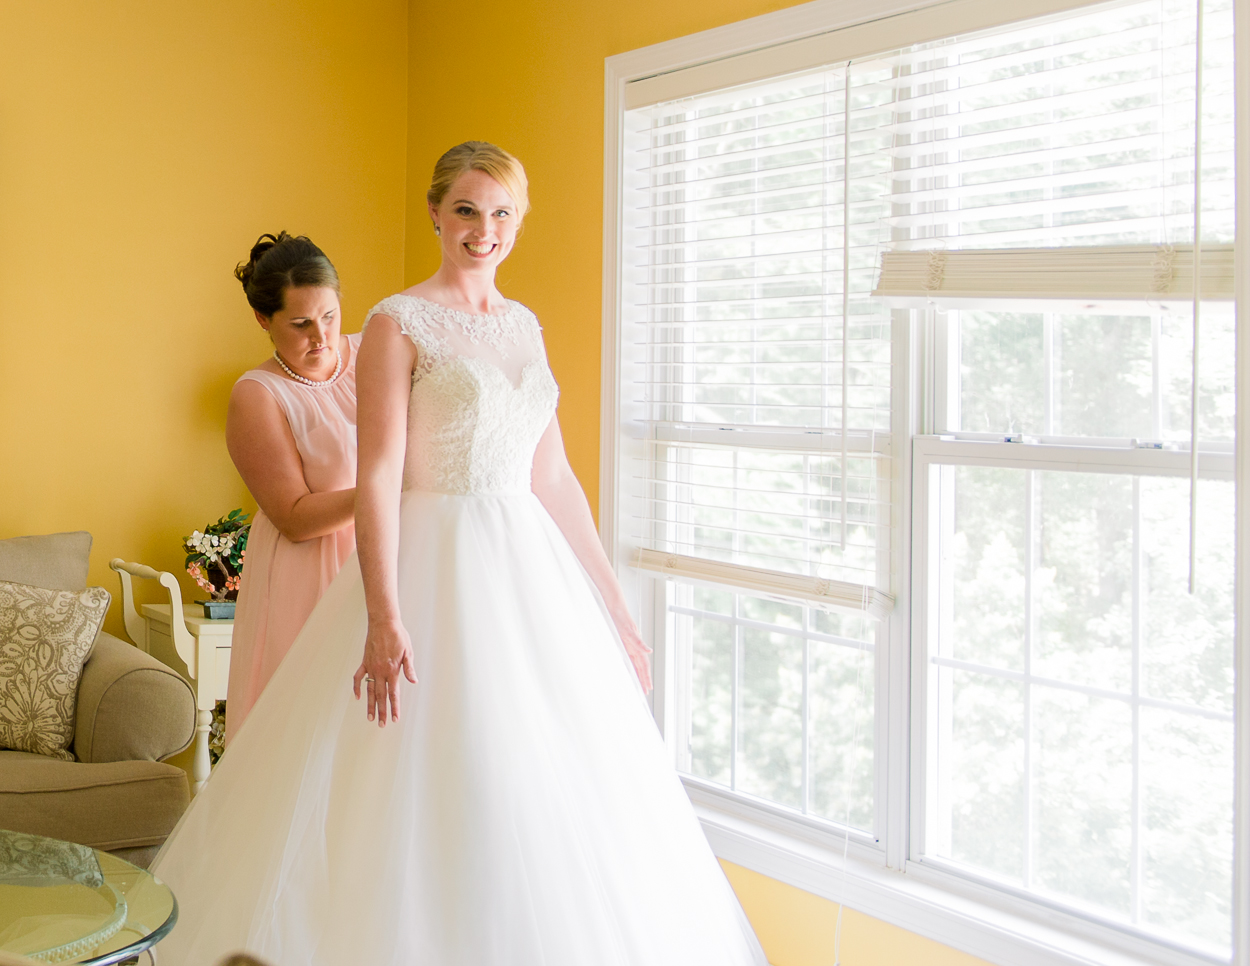 virginiawedding_vineyardwedding_LostCreekWinery_LeesburgWedding_youseephotography_Siegel (44).JPG